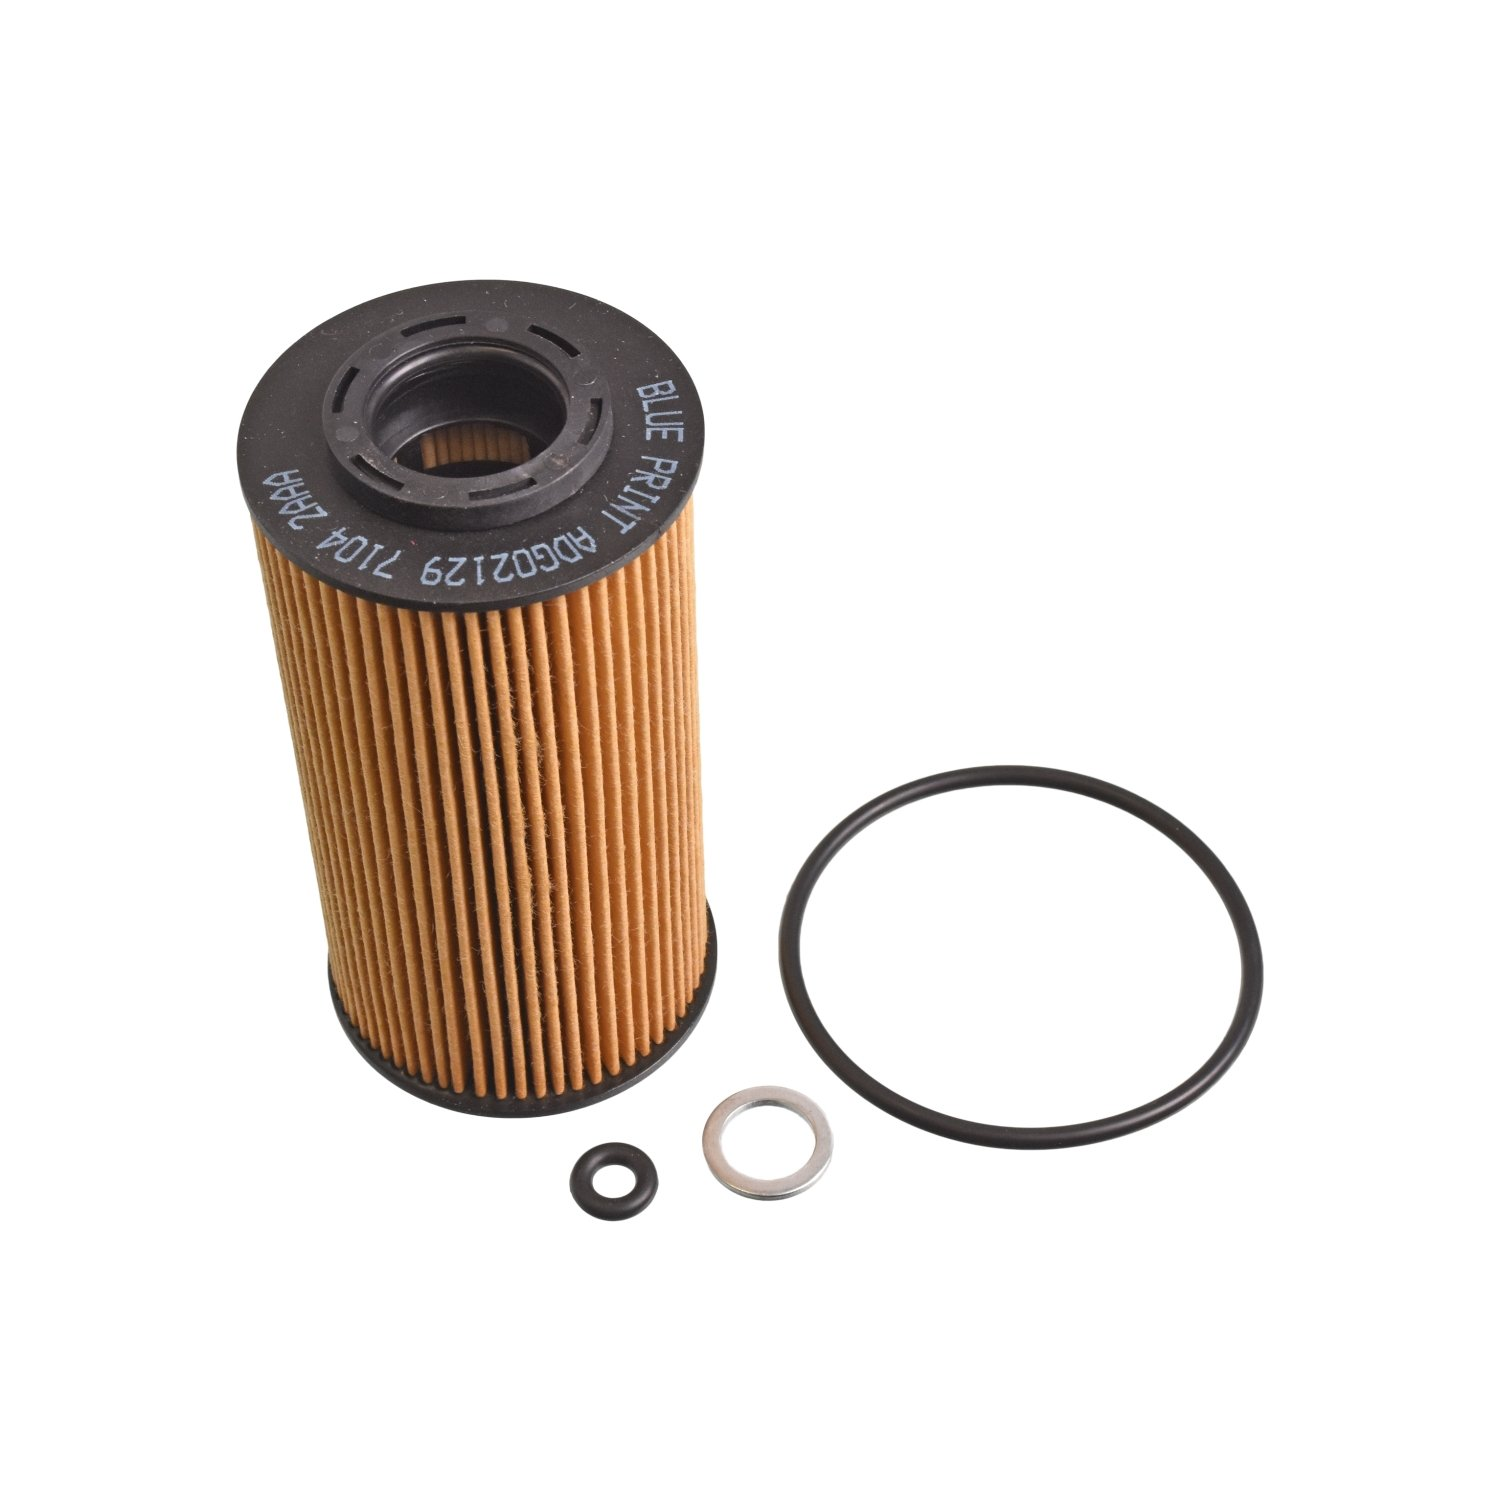 Blue Print ADG02129 oil filter with seal rings  - Pack of 1 Automotive Distributors Limited